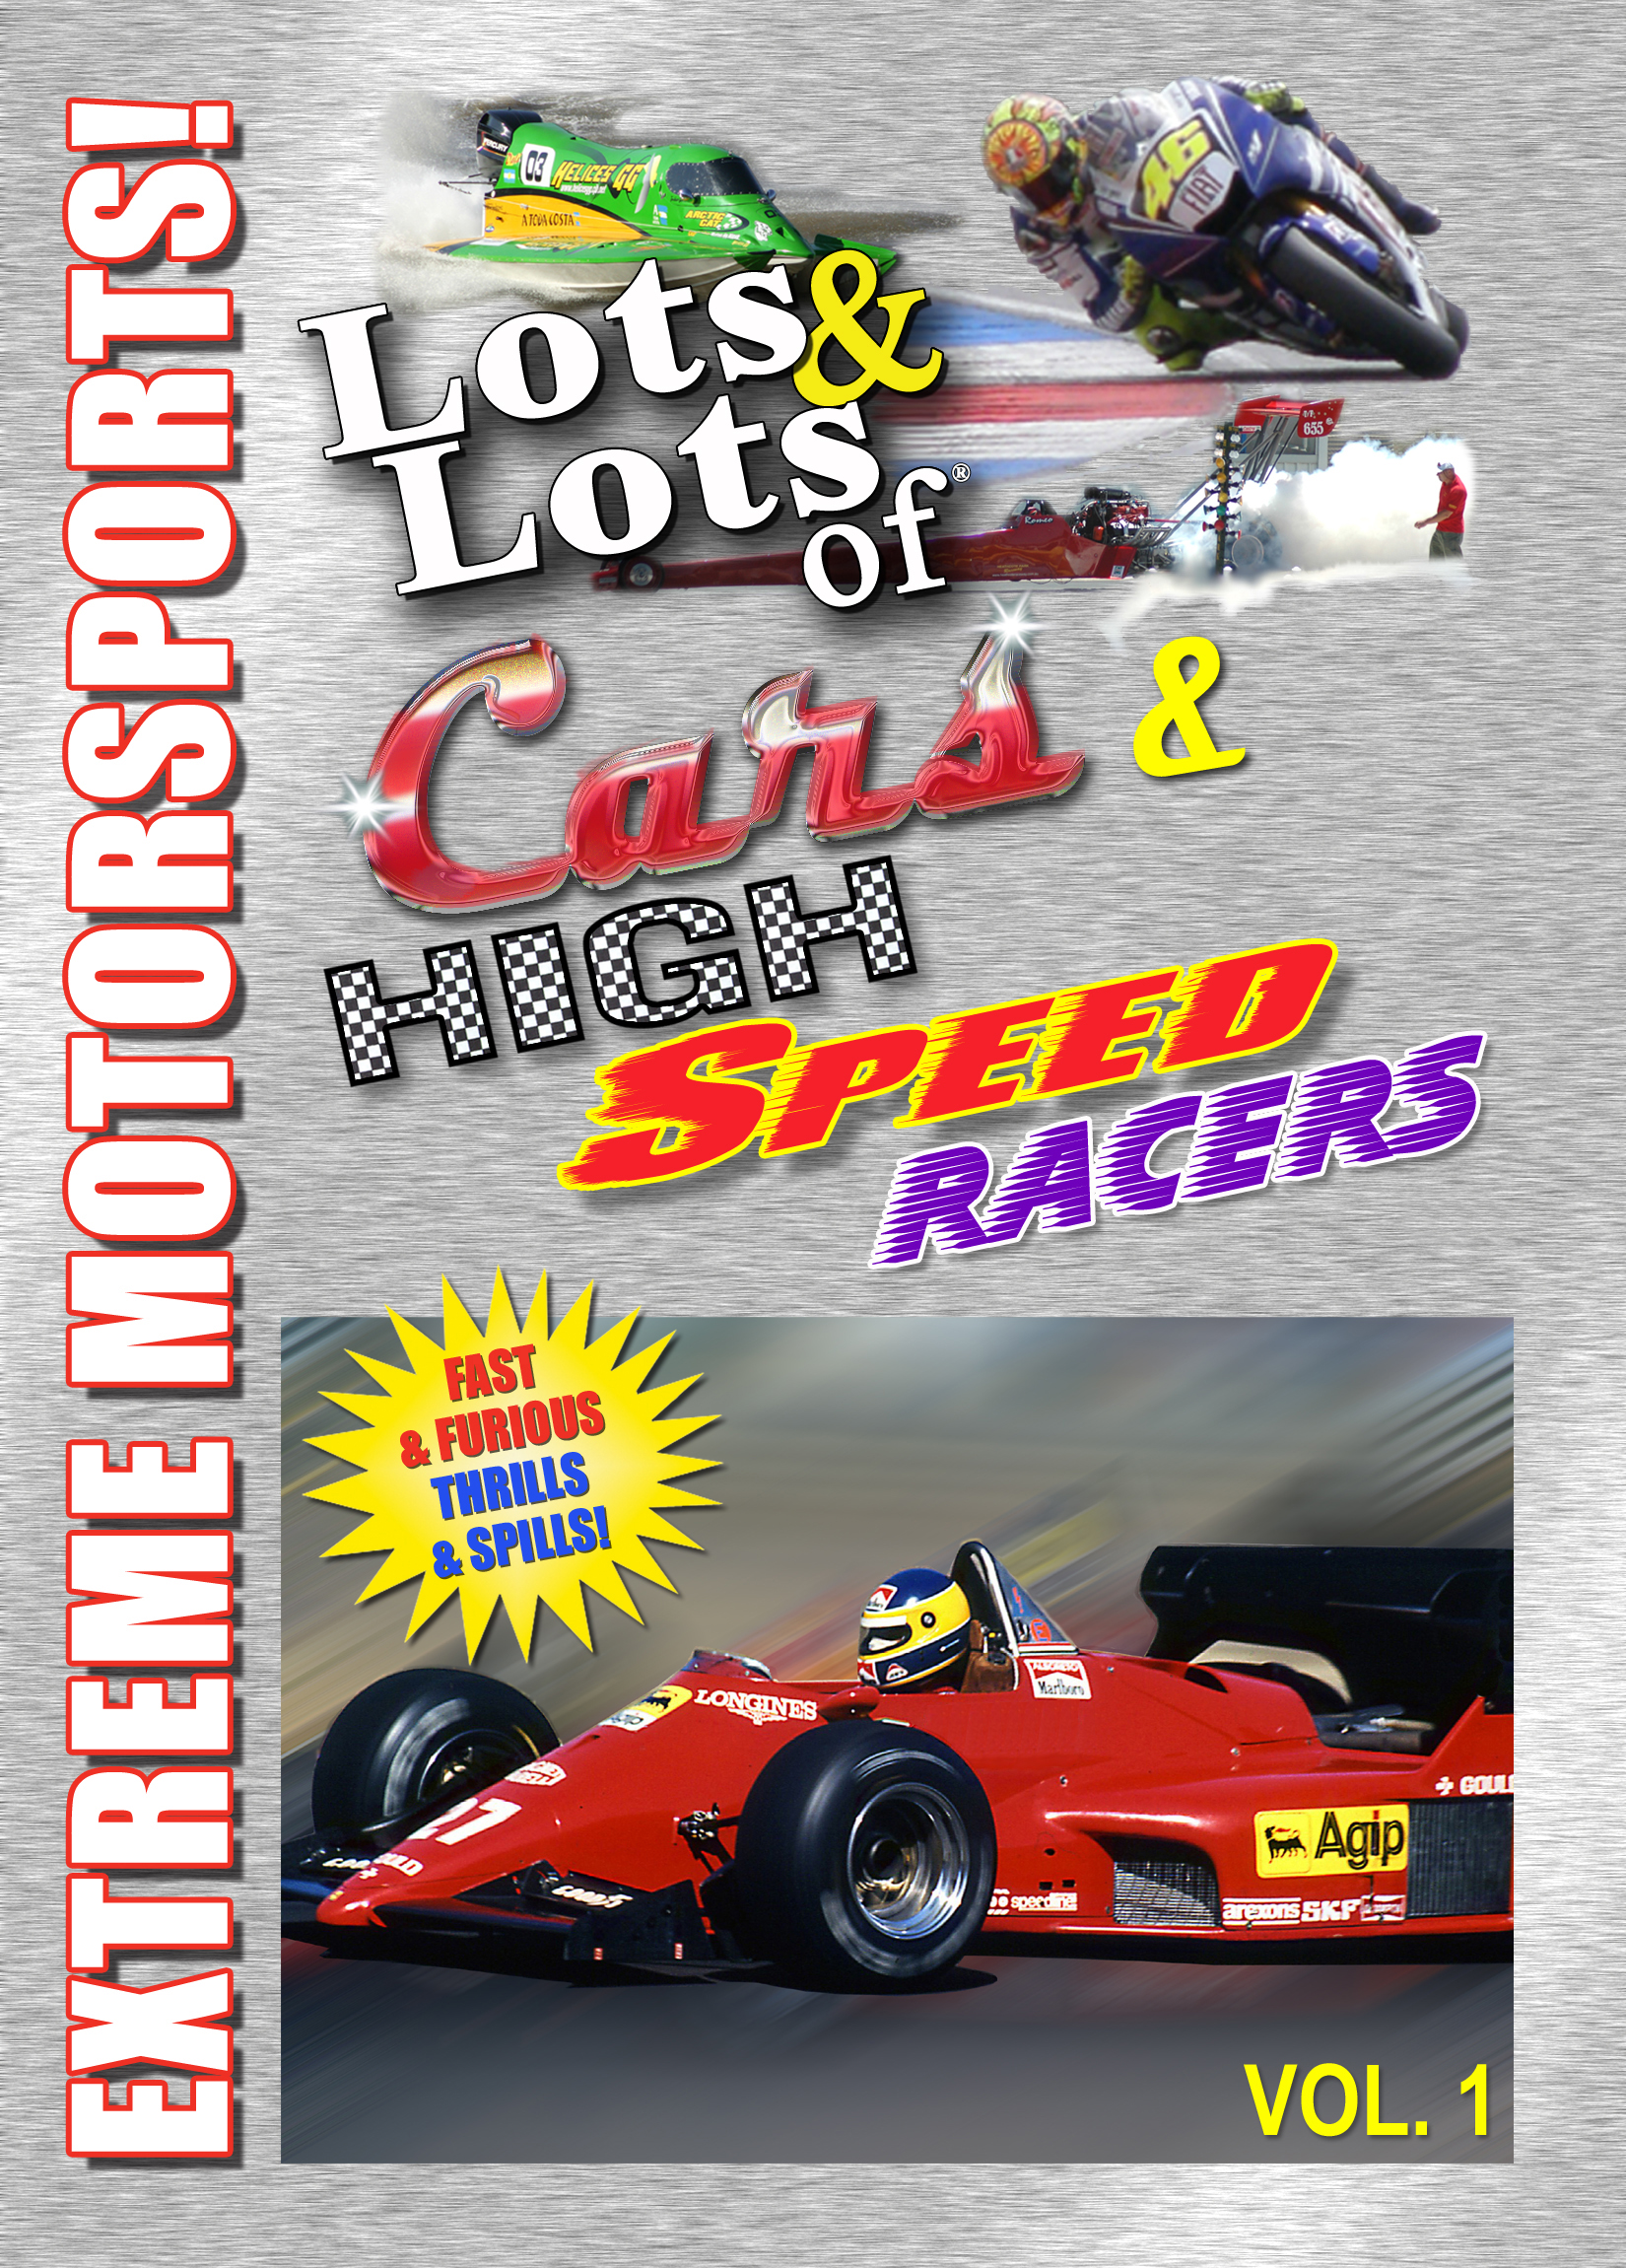 All About Cars >> All About Lots Lots Of Fast Cars Monster Trucks And High Speed Racers Vol 1 Dvd By Motorsports Drivers